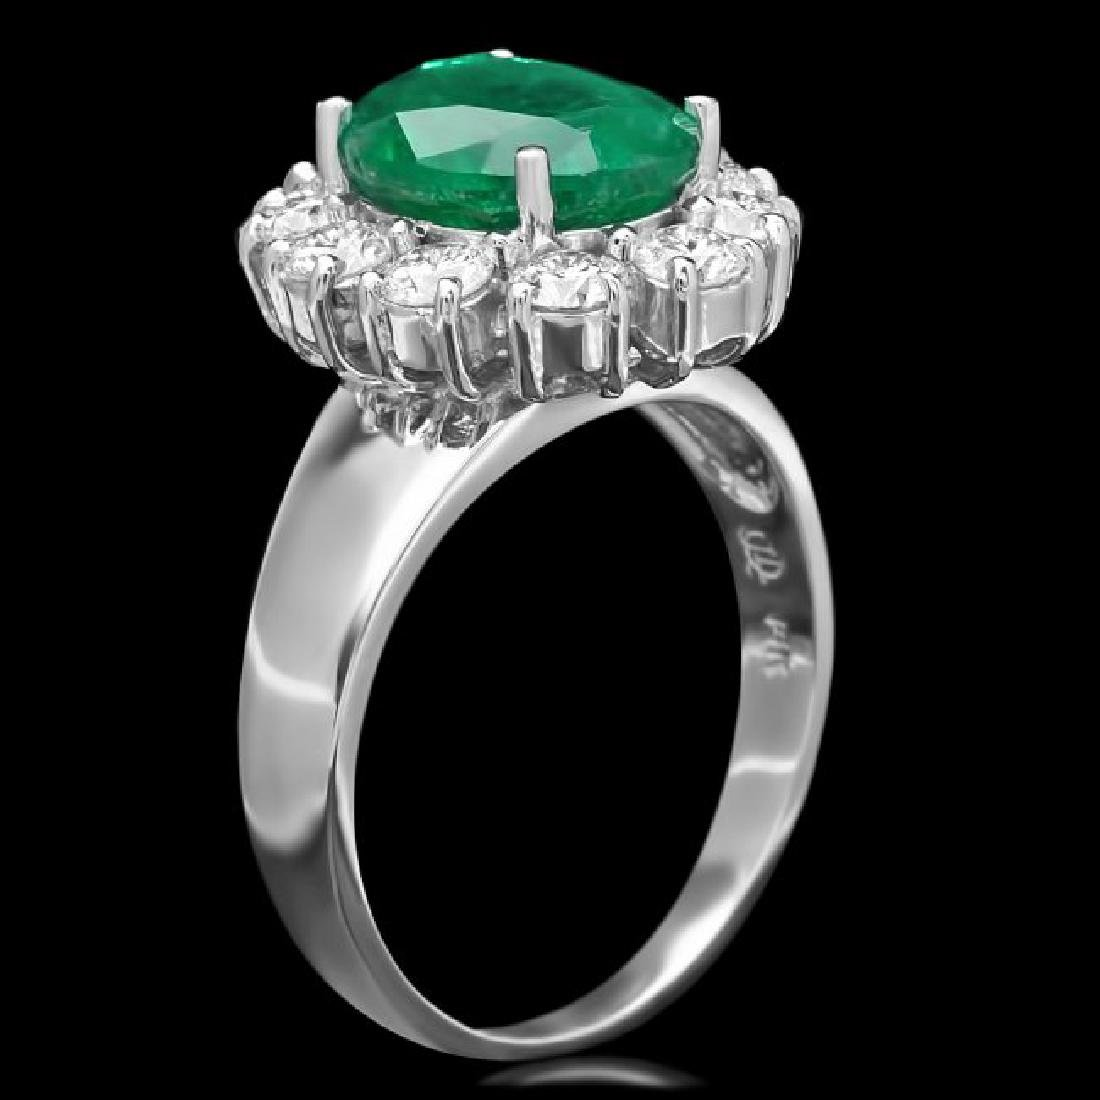 14k White Gold 3.00ct Emerald 1.10ct Diamond Ring - 2